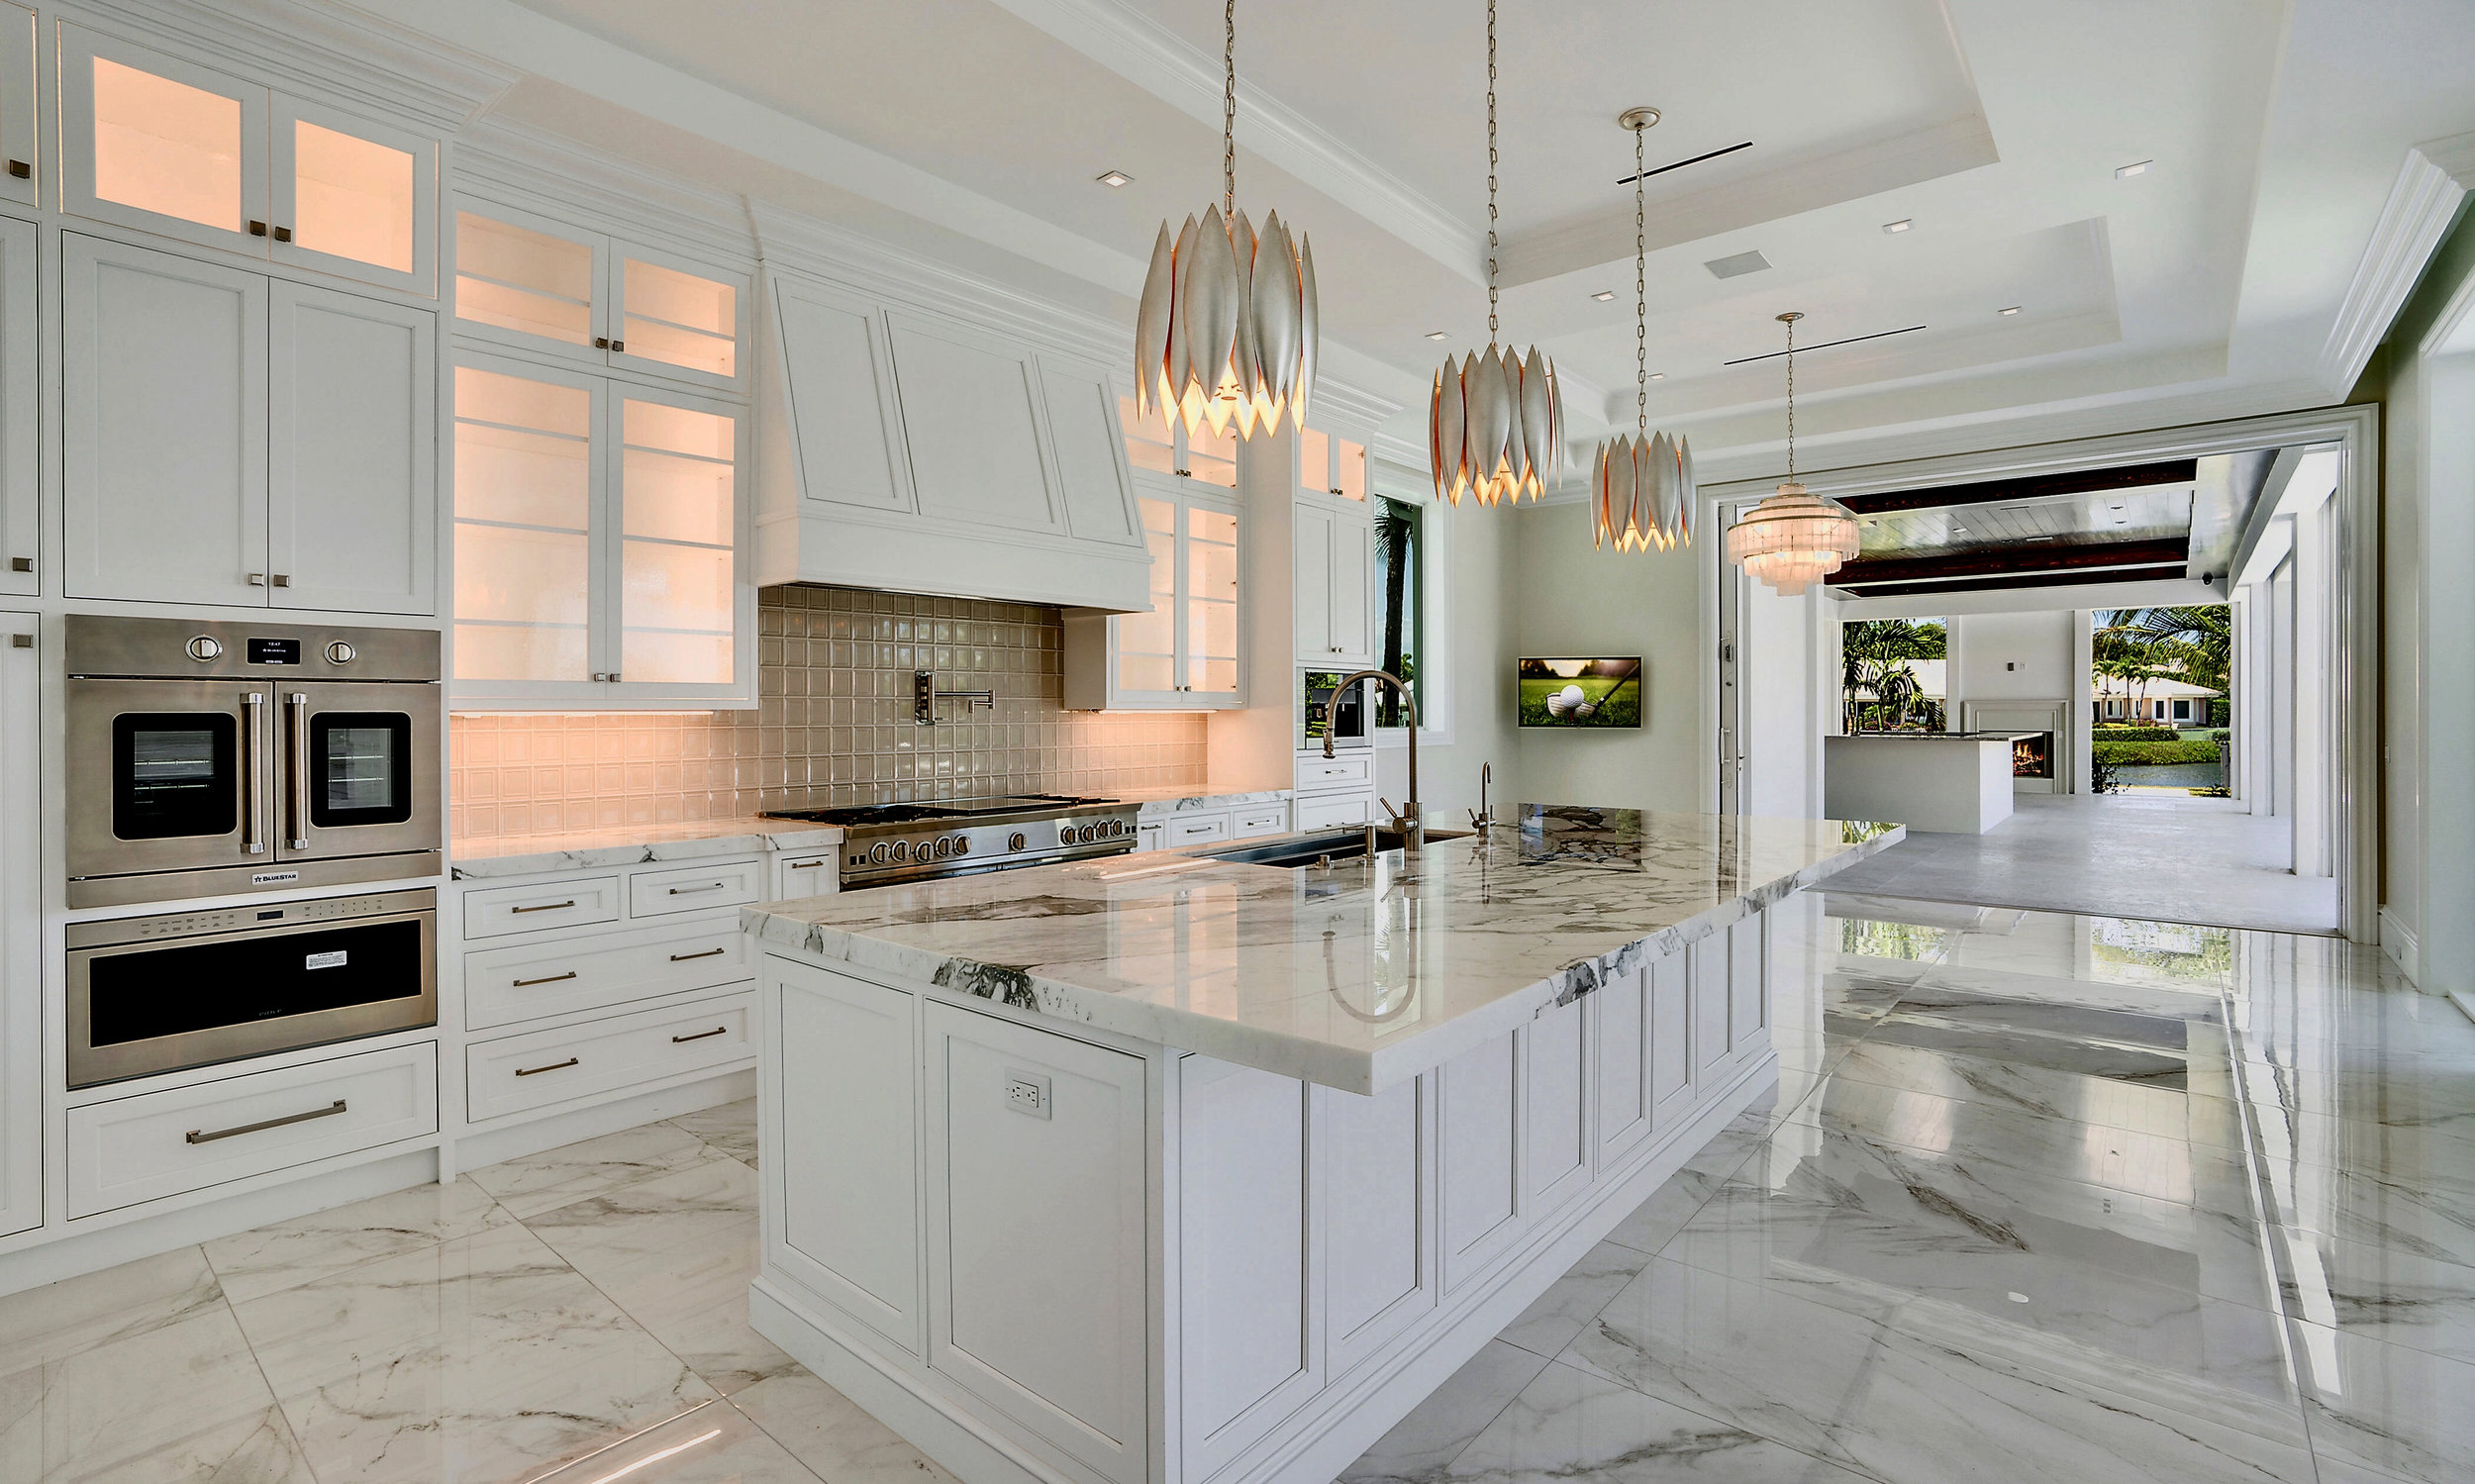 134 Spyglass Ln Jupiter FL-Kitchen.jpg